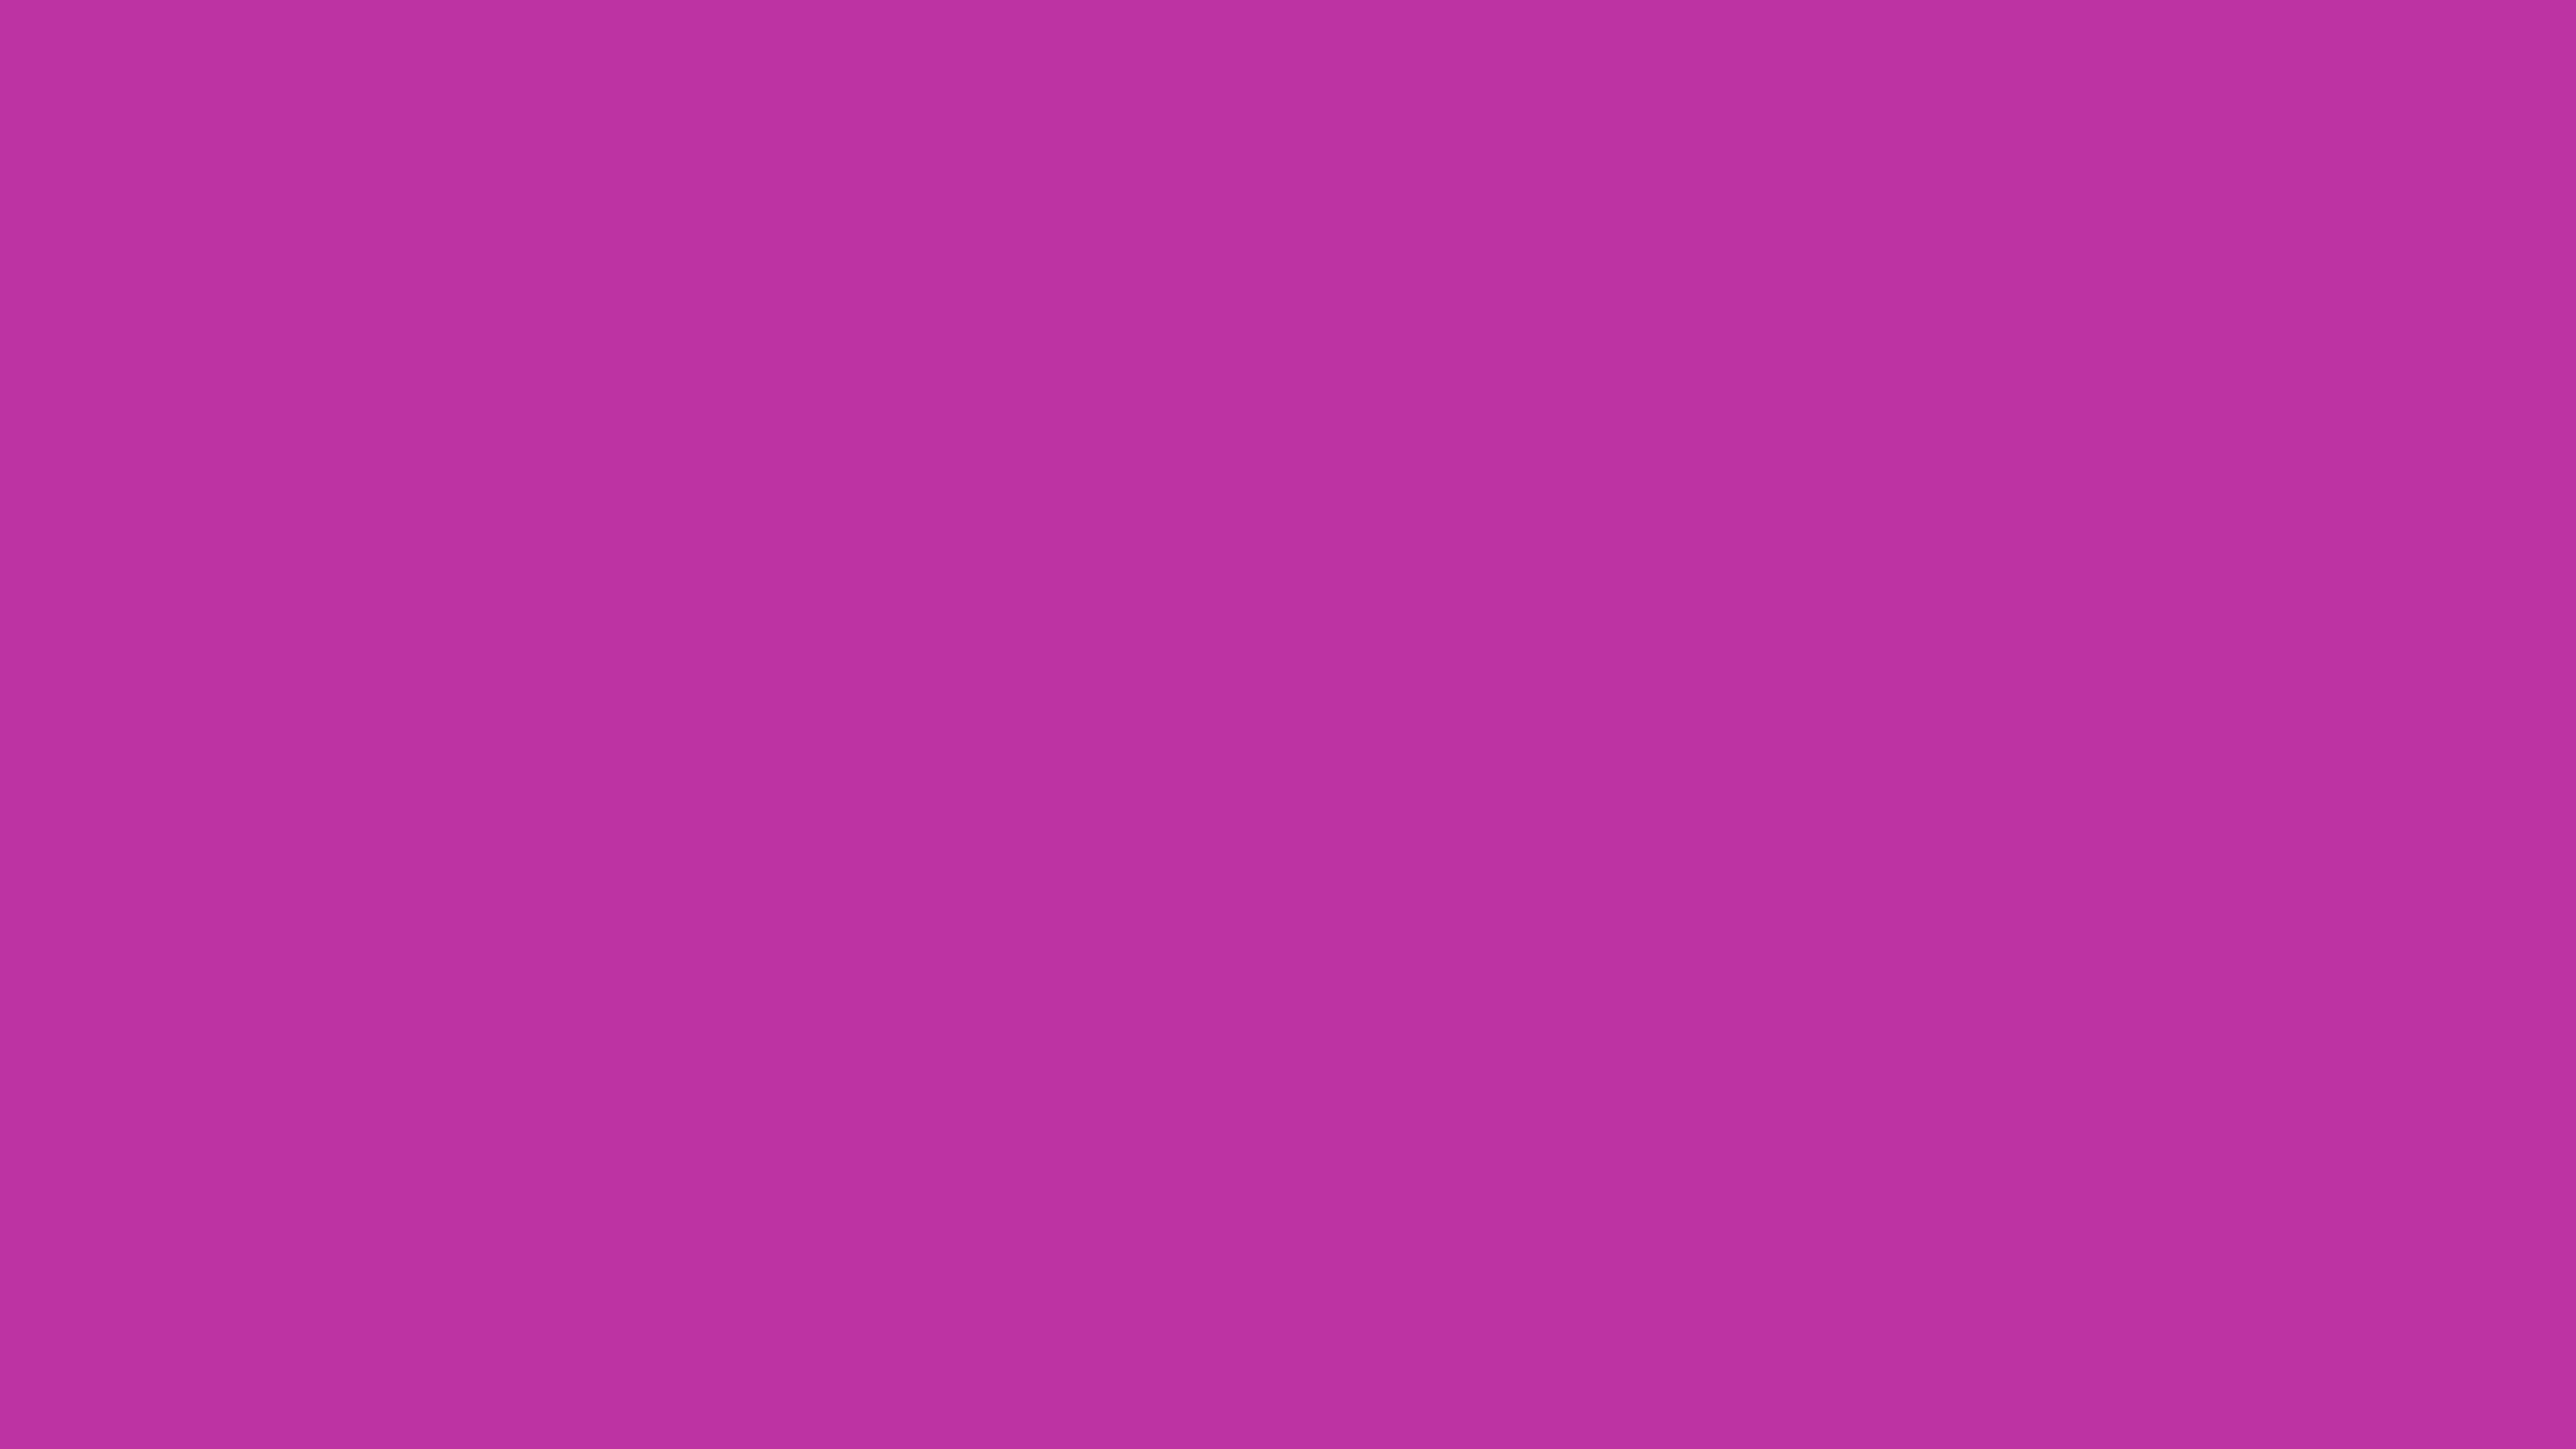 7680x4320 Byzantine Solid Color Background